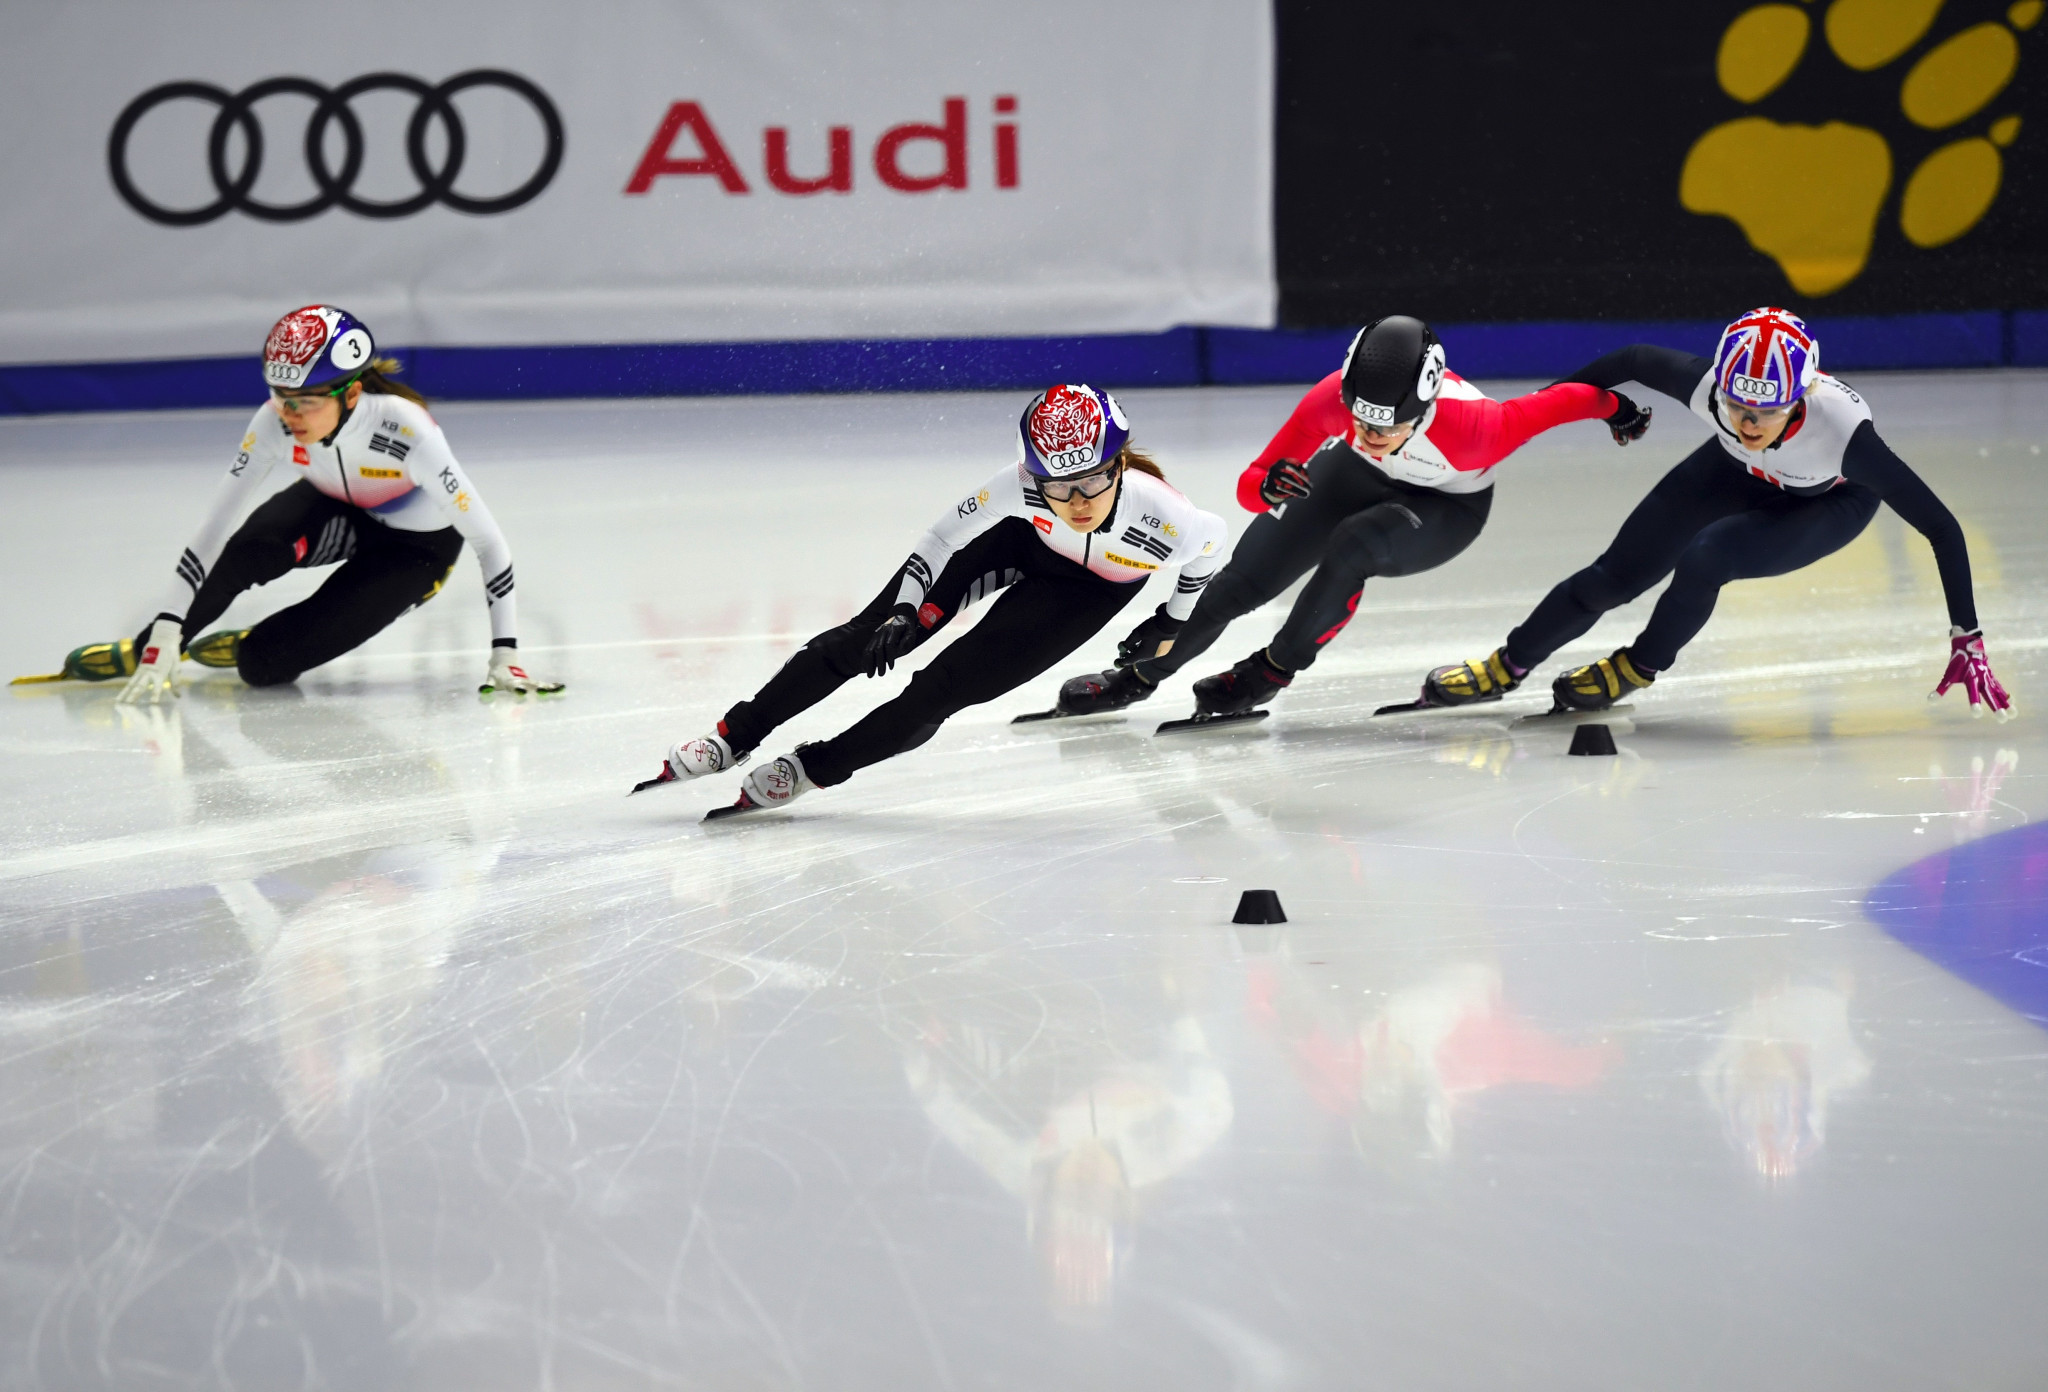 Short Track Speed Skating At The 2020 Olympic Winter Games.Calendar Confirmed For 2019 2020 Isu Short Track World Cup